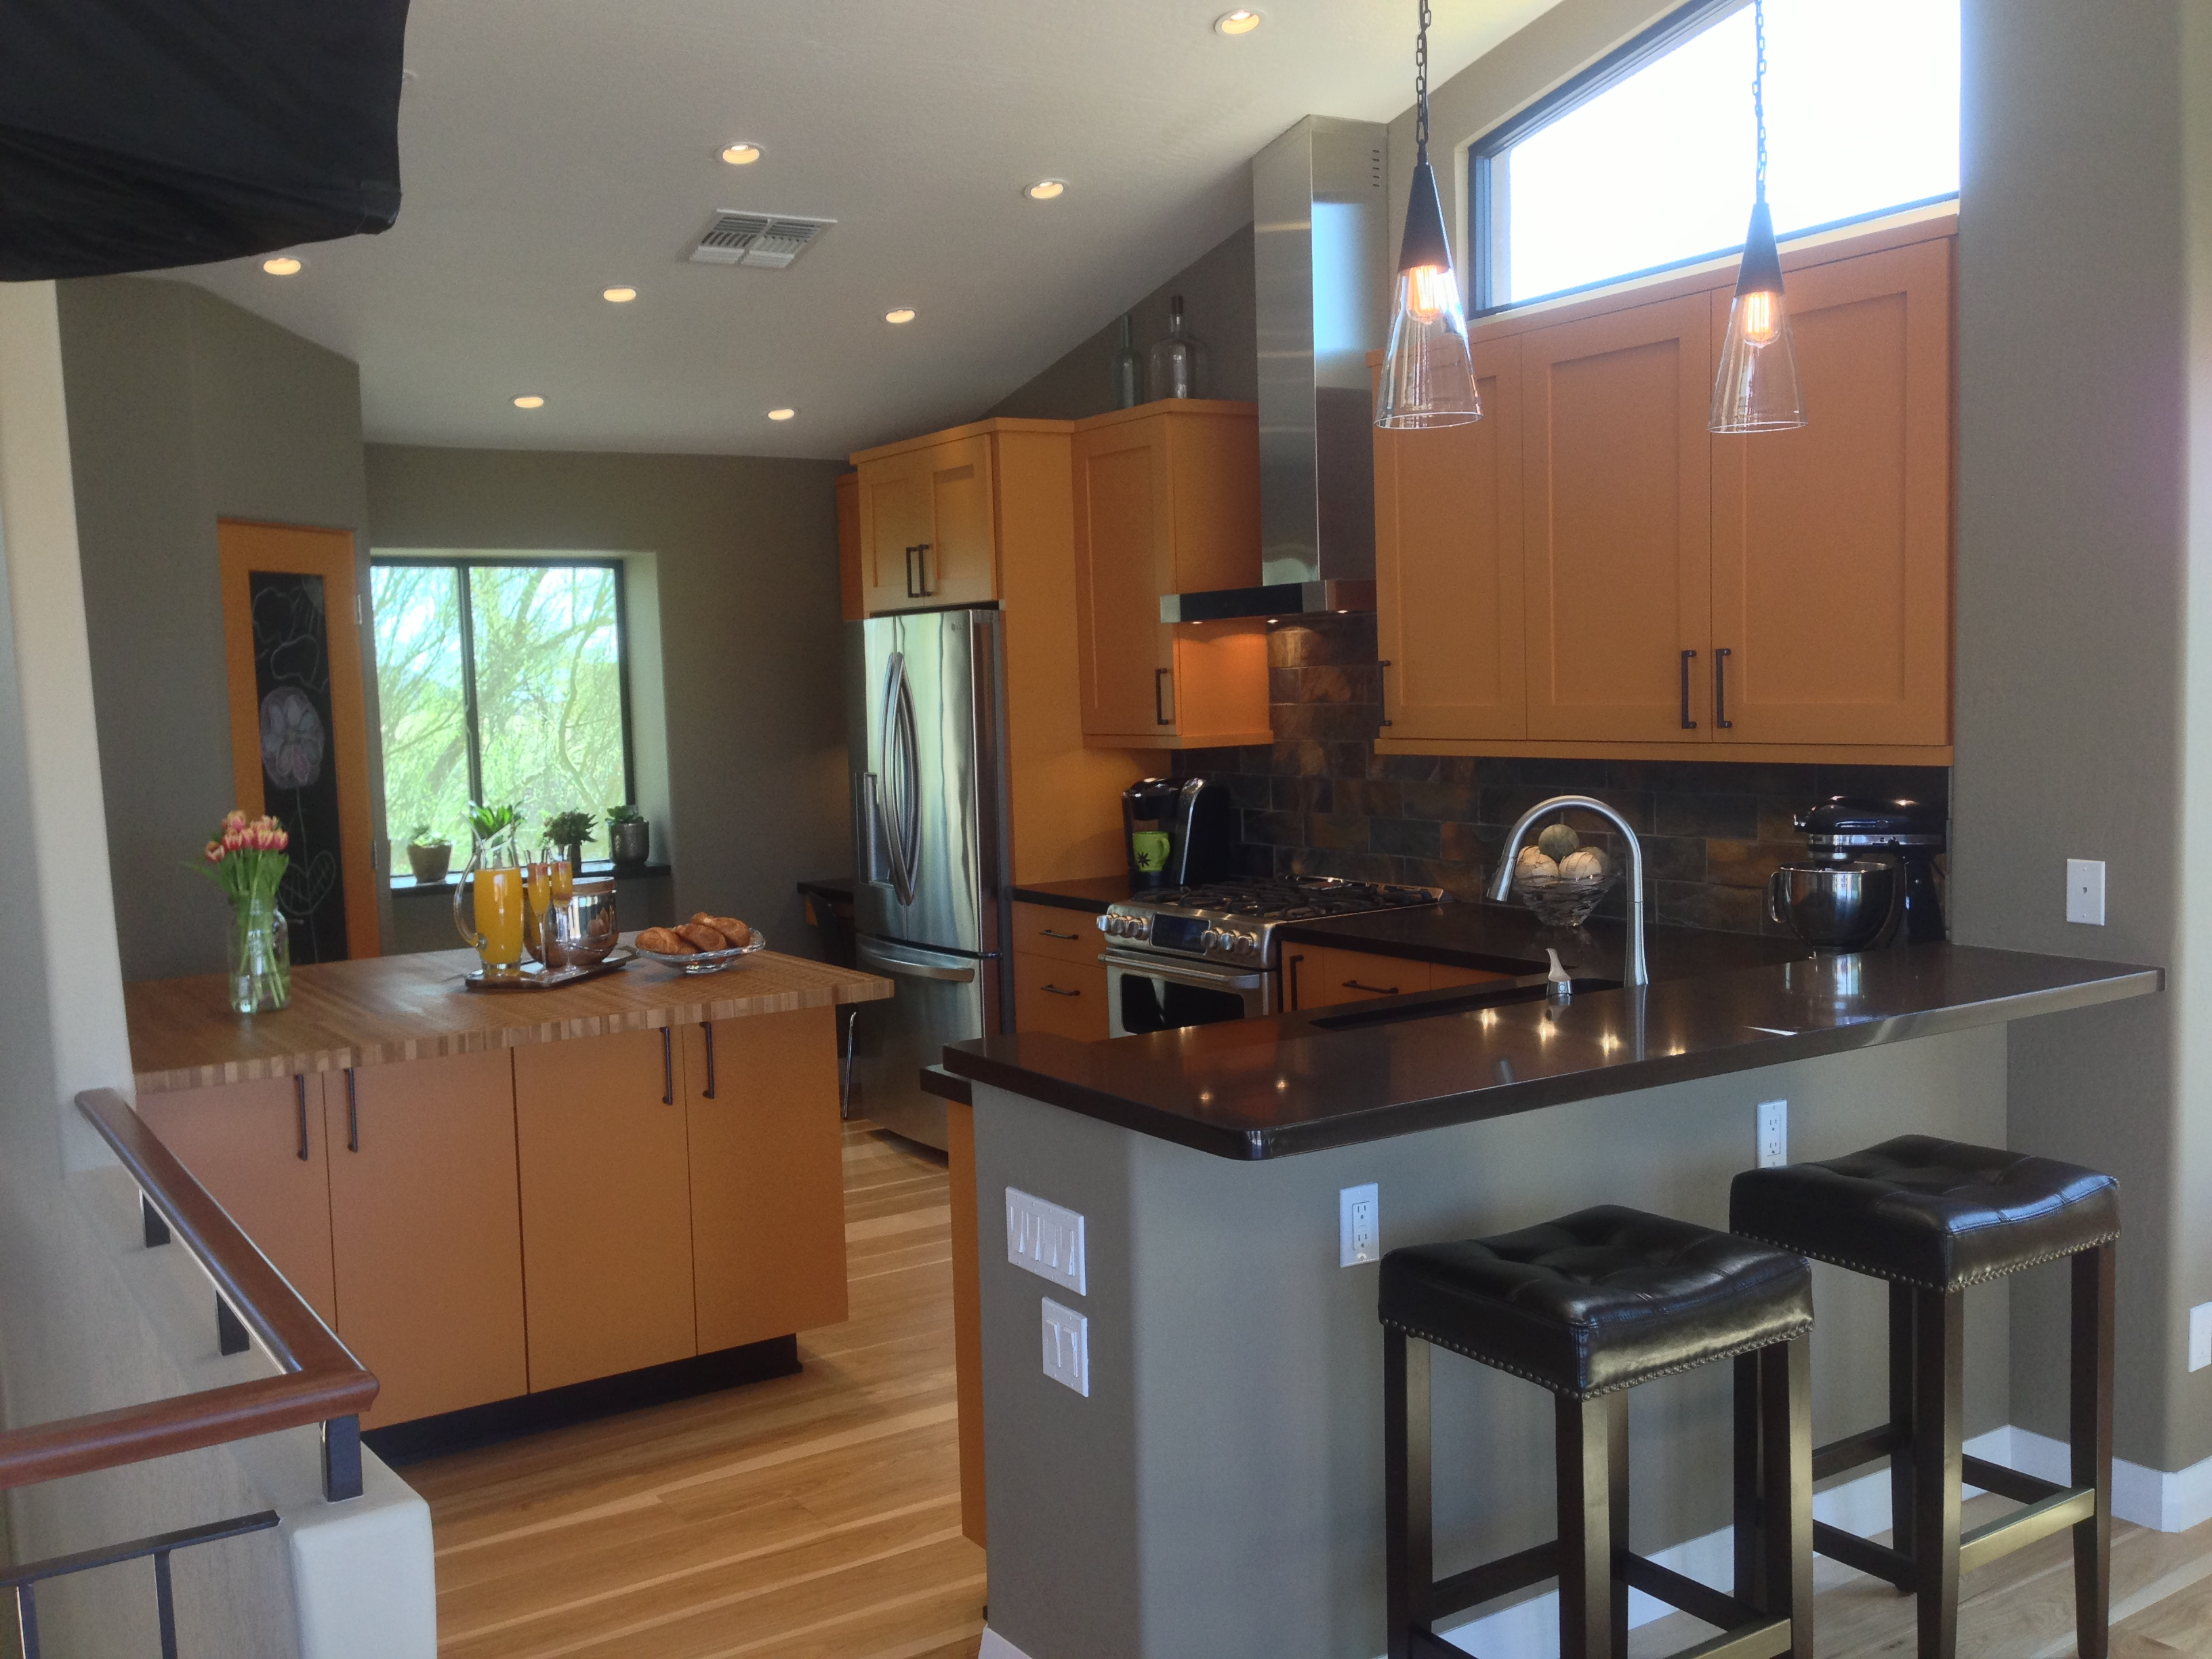 Granite Countertops for Kitchen Remodeling in Scottsdale on kitchens with double sinks, kitchens with back splash, kitchens with open beams, kitchens with pecan cabinets, kitchens with 2 stoves, kitchens with bianco romano granite, kitchens with wet bar, kitchens with flat top stoves, kitchens with spanish tile, kitchens with eat in kitchen, kitchens with uba tuba granite, kitchens with silestone, kitchens with undercabinet lighting, kitchens with cedar cabinets, kitchens with unfinished cabinets, kitchens with white cabinets, kitchens with flooring, kitchens with gas range, kitchens with jenn air appliances, maple kitchen cabinets with black countertops,